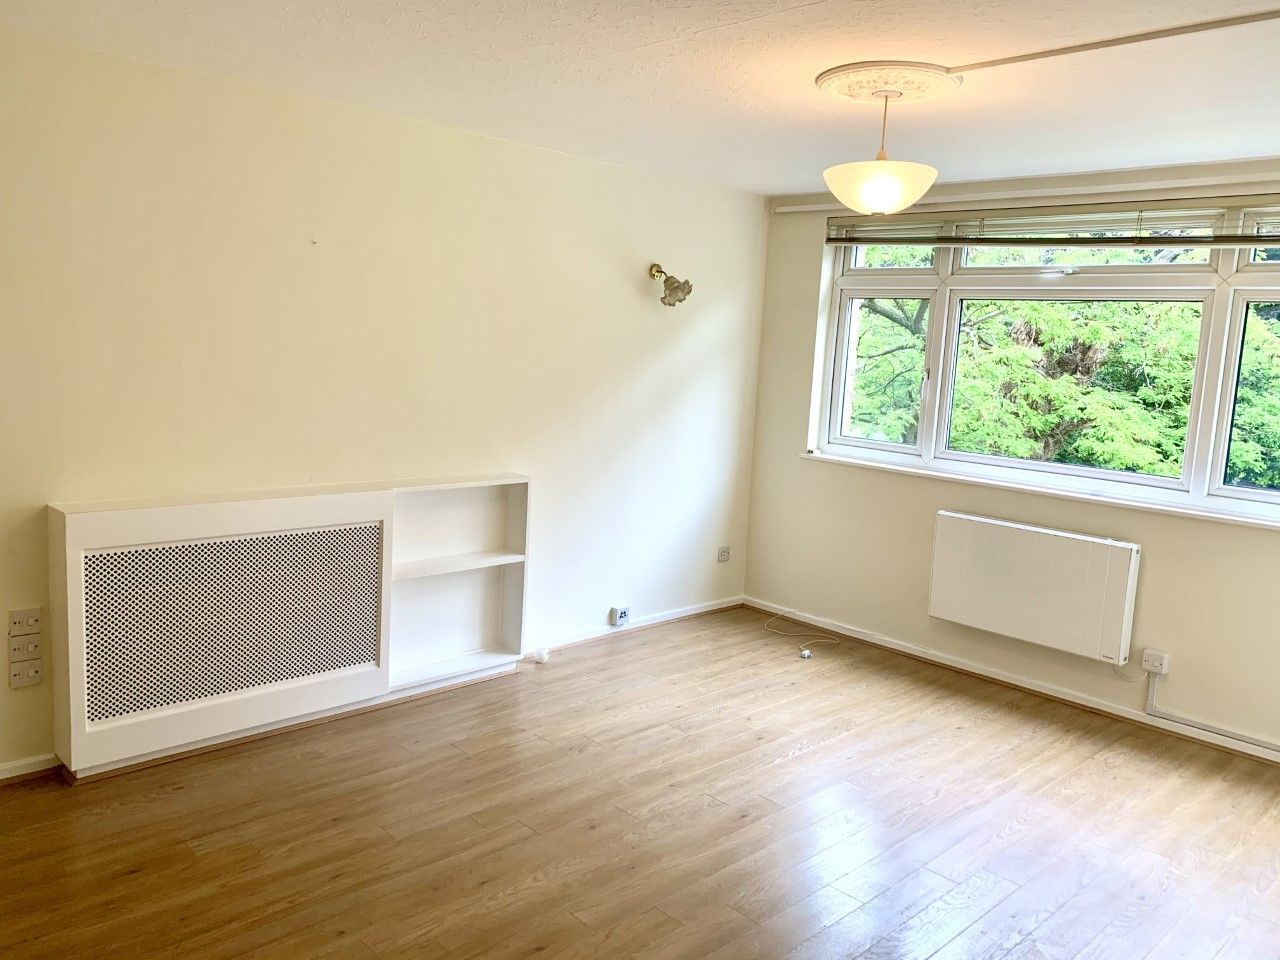 2 bedroom apartment flat/apartment To Let in Sutton - Photograph 1.